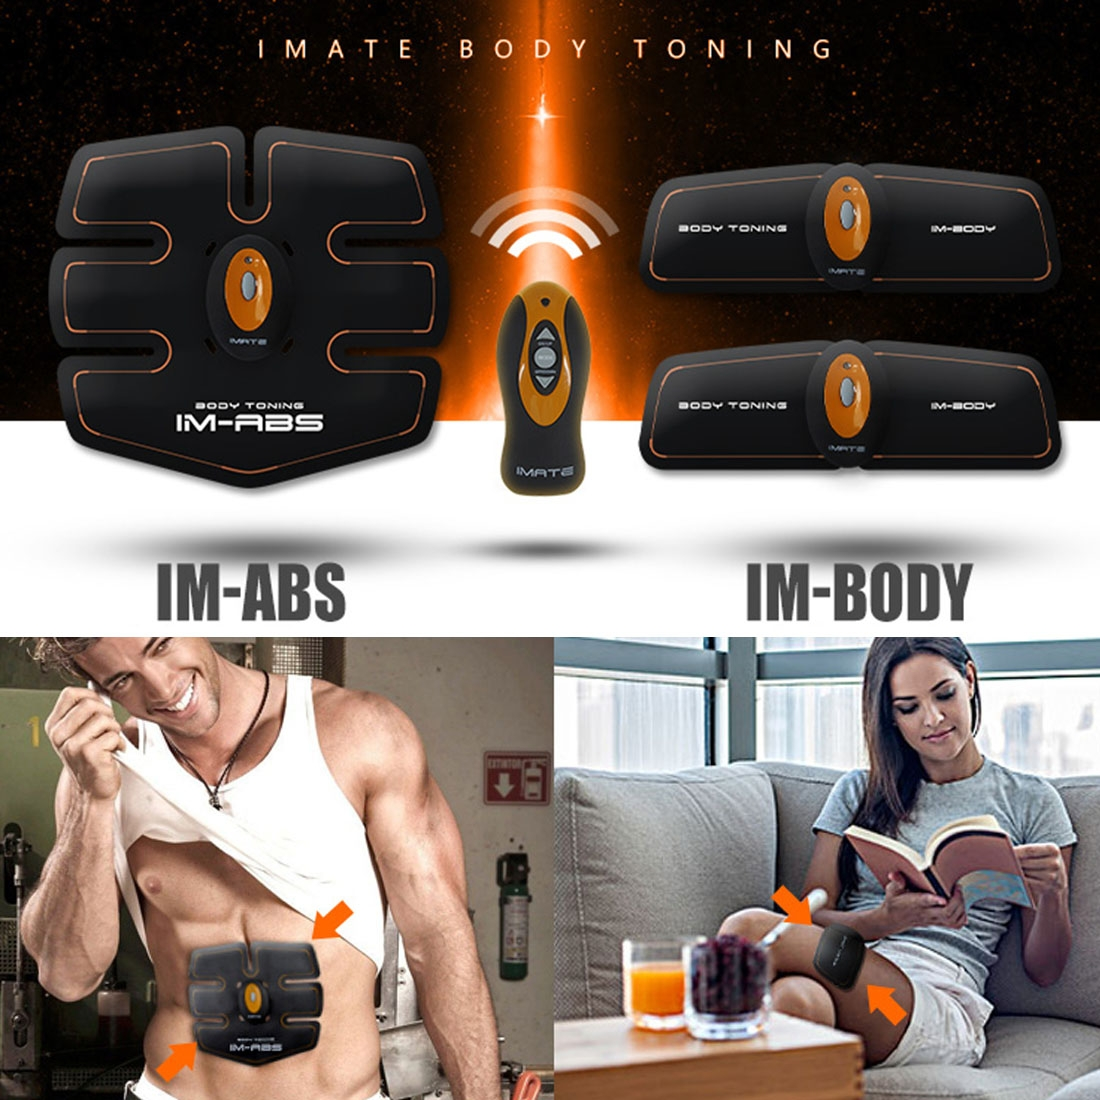 For years electronic muscle toning has helped people tone their muscles in addition to regular exercise and proper nutrition. These electronic muscle toners use electrical signals to force your muscles to contract, working the muscle to give you more definition.